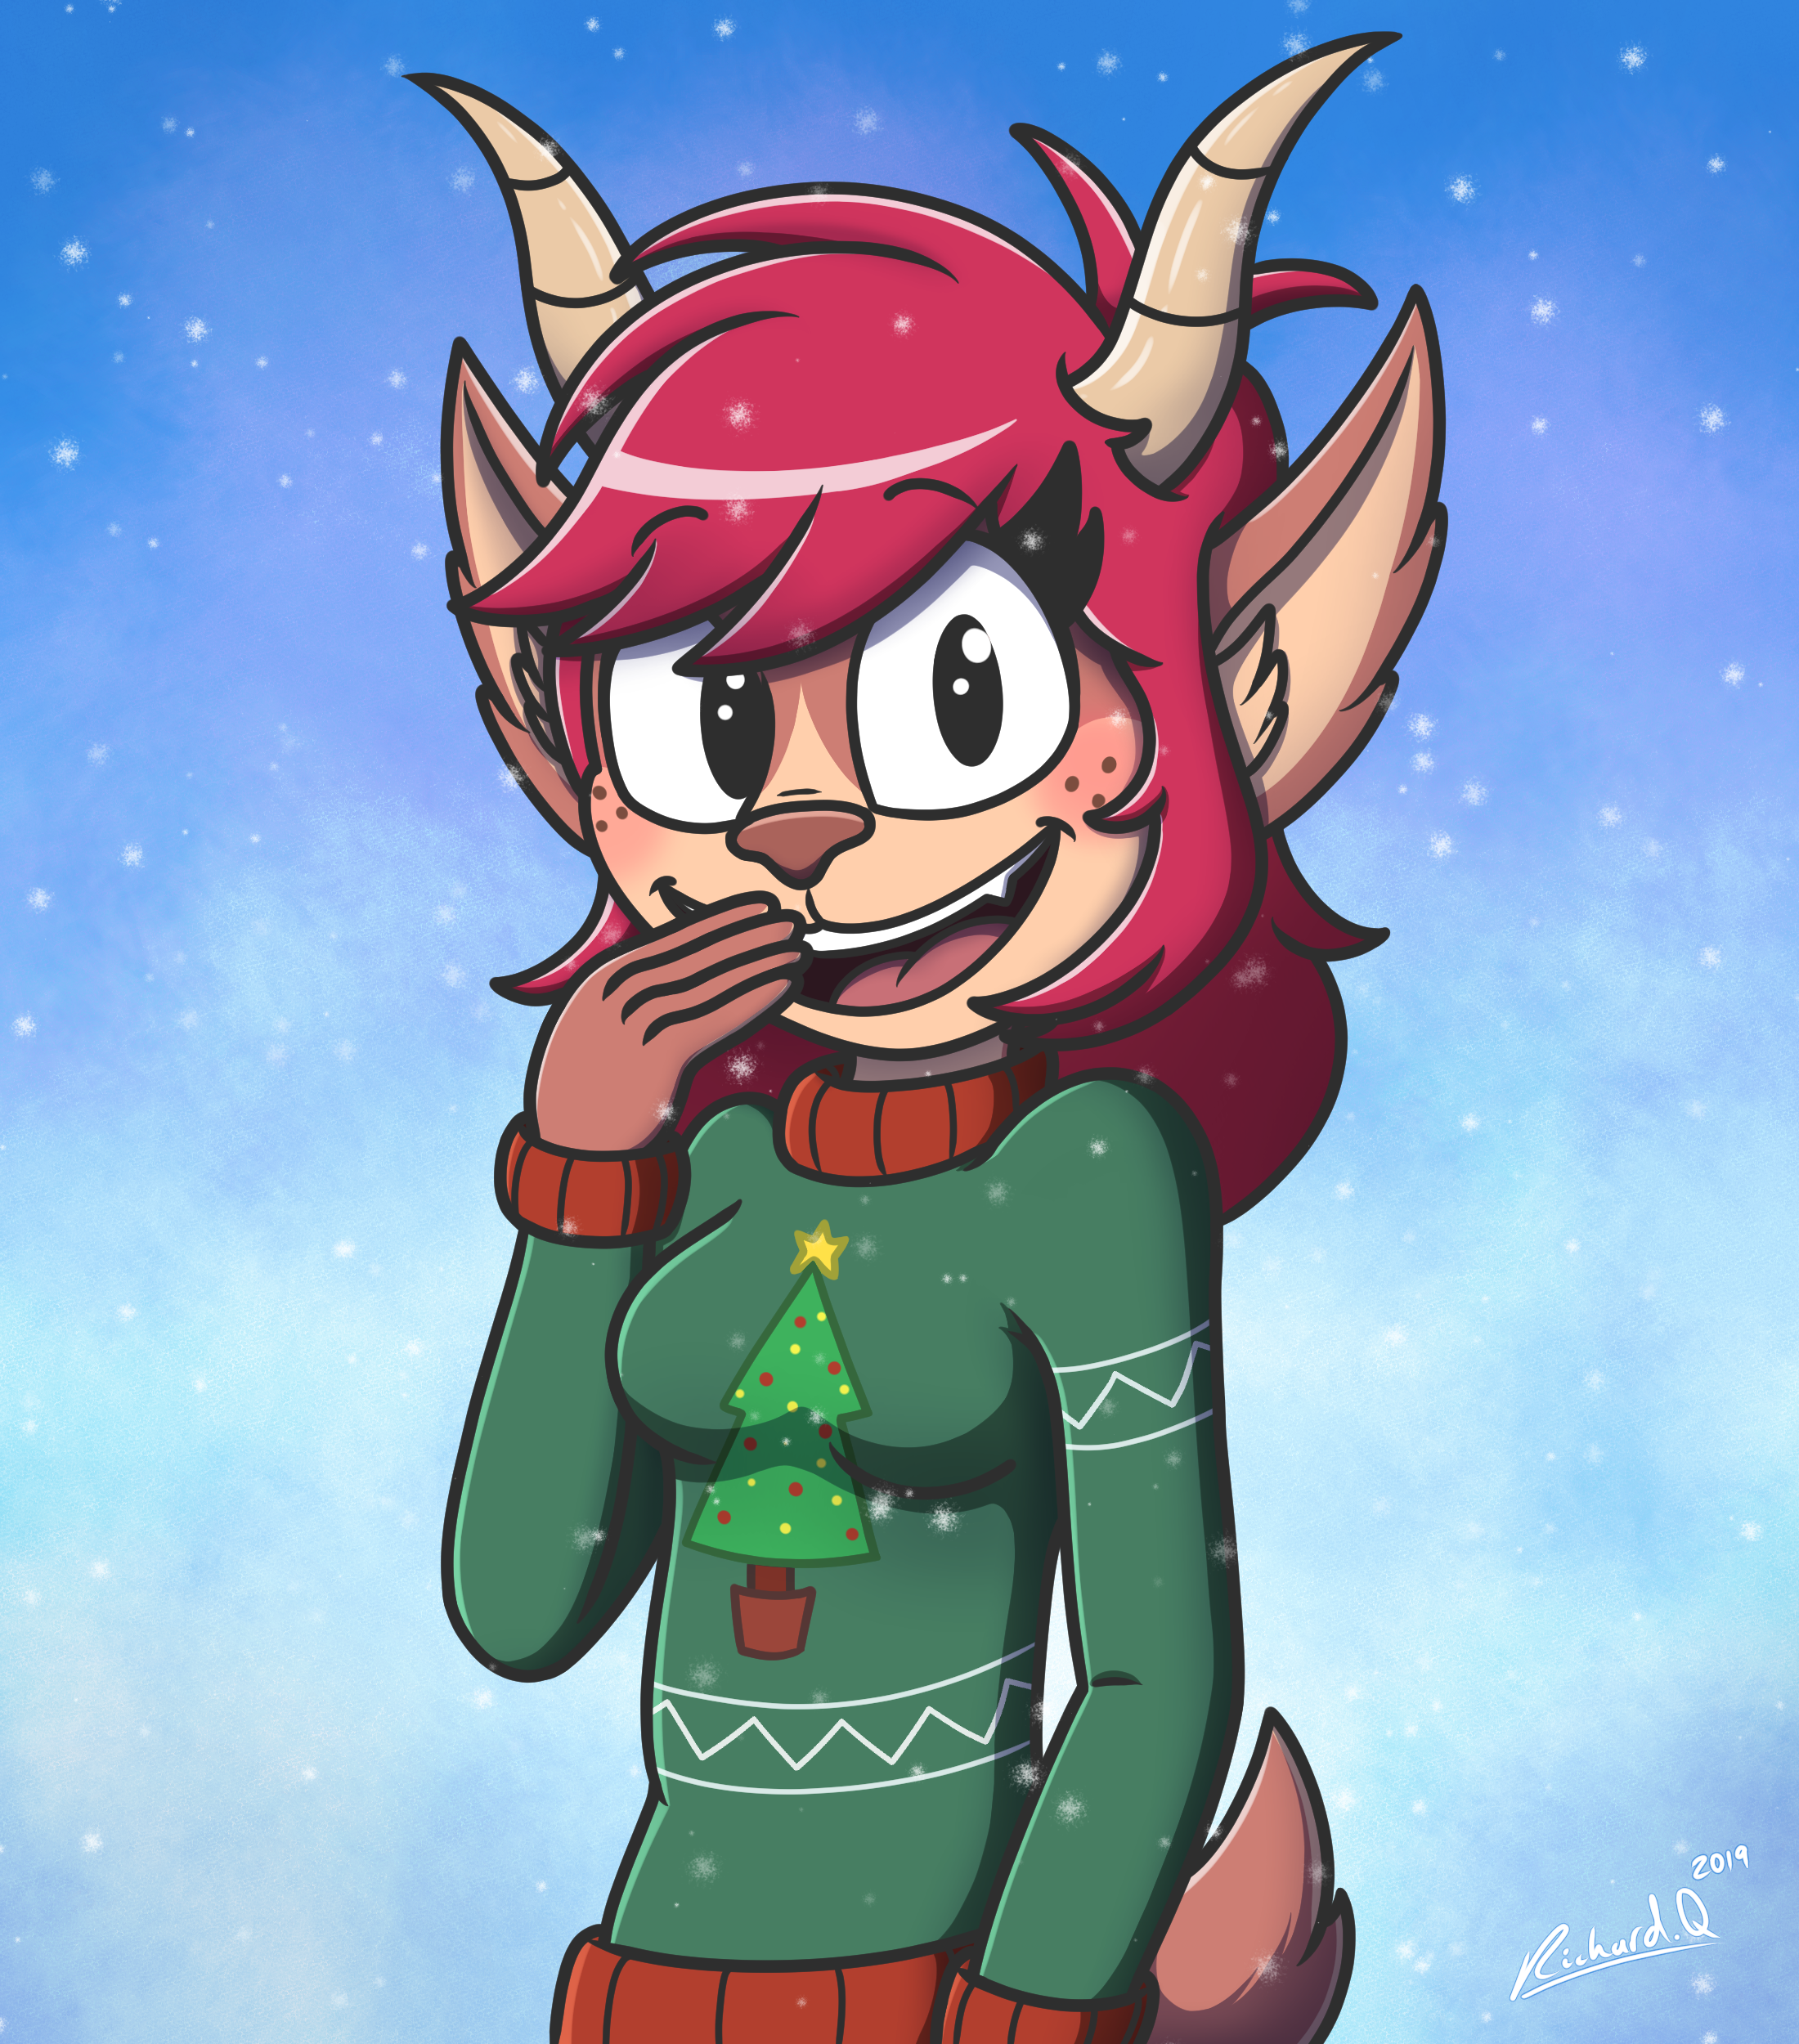 Astaria's Jolly Christmas Sweater